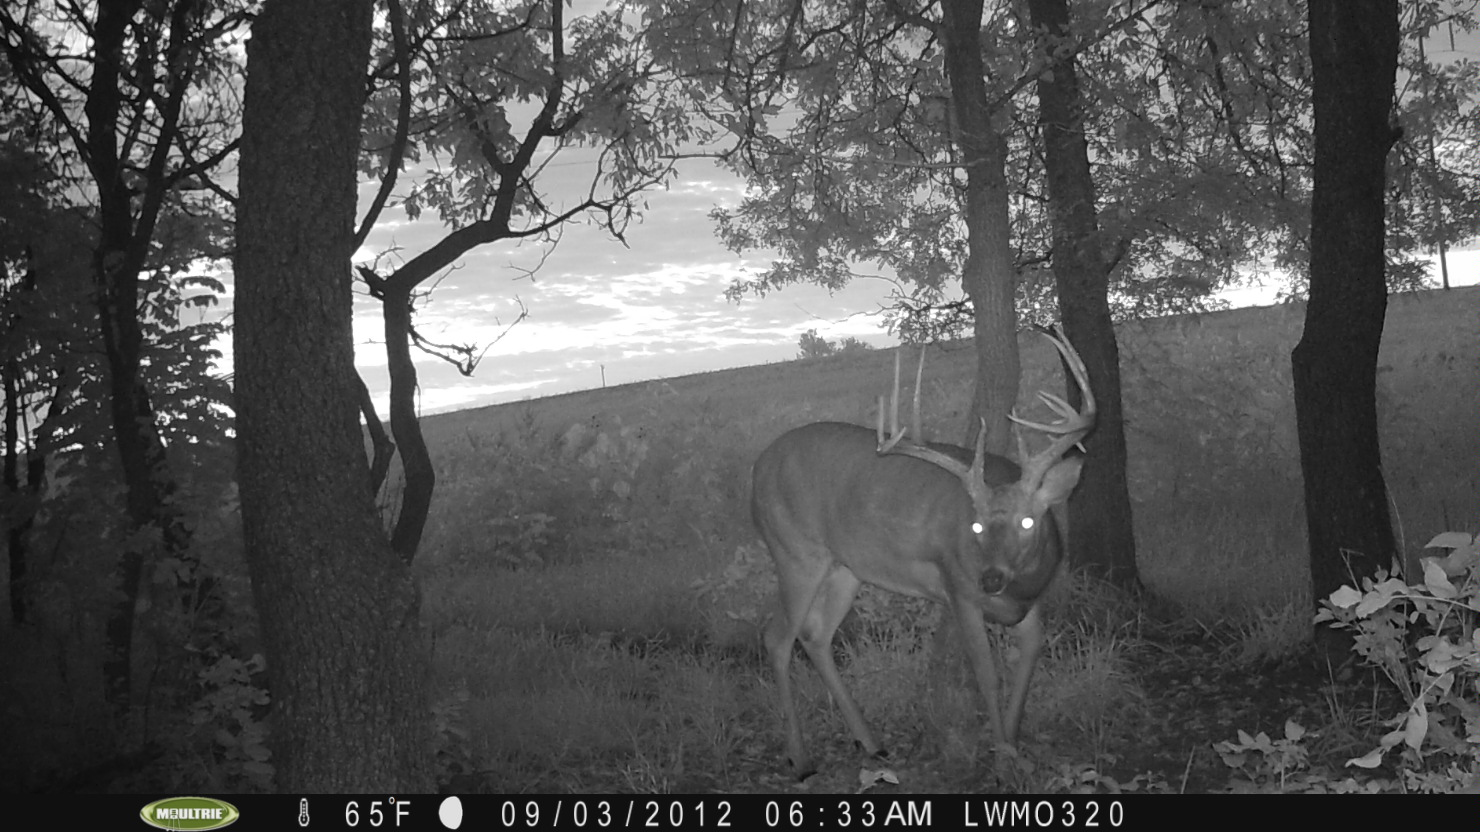 Trail cam picture